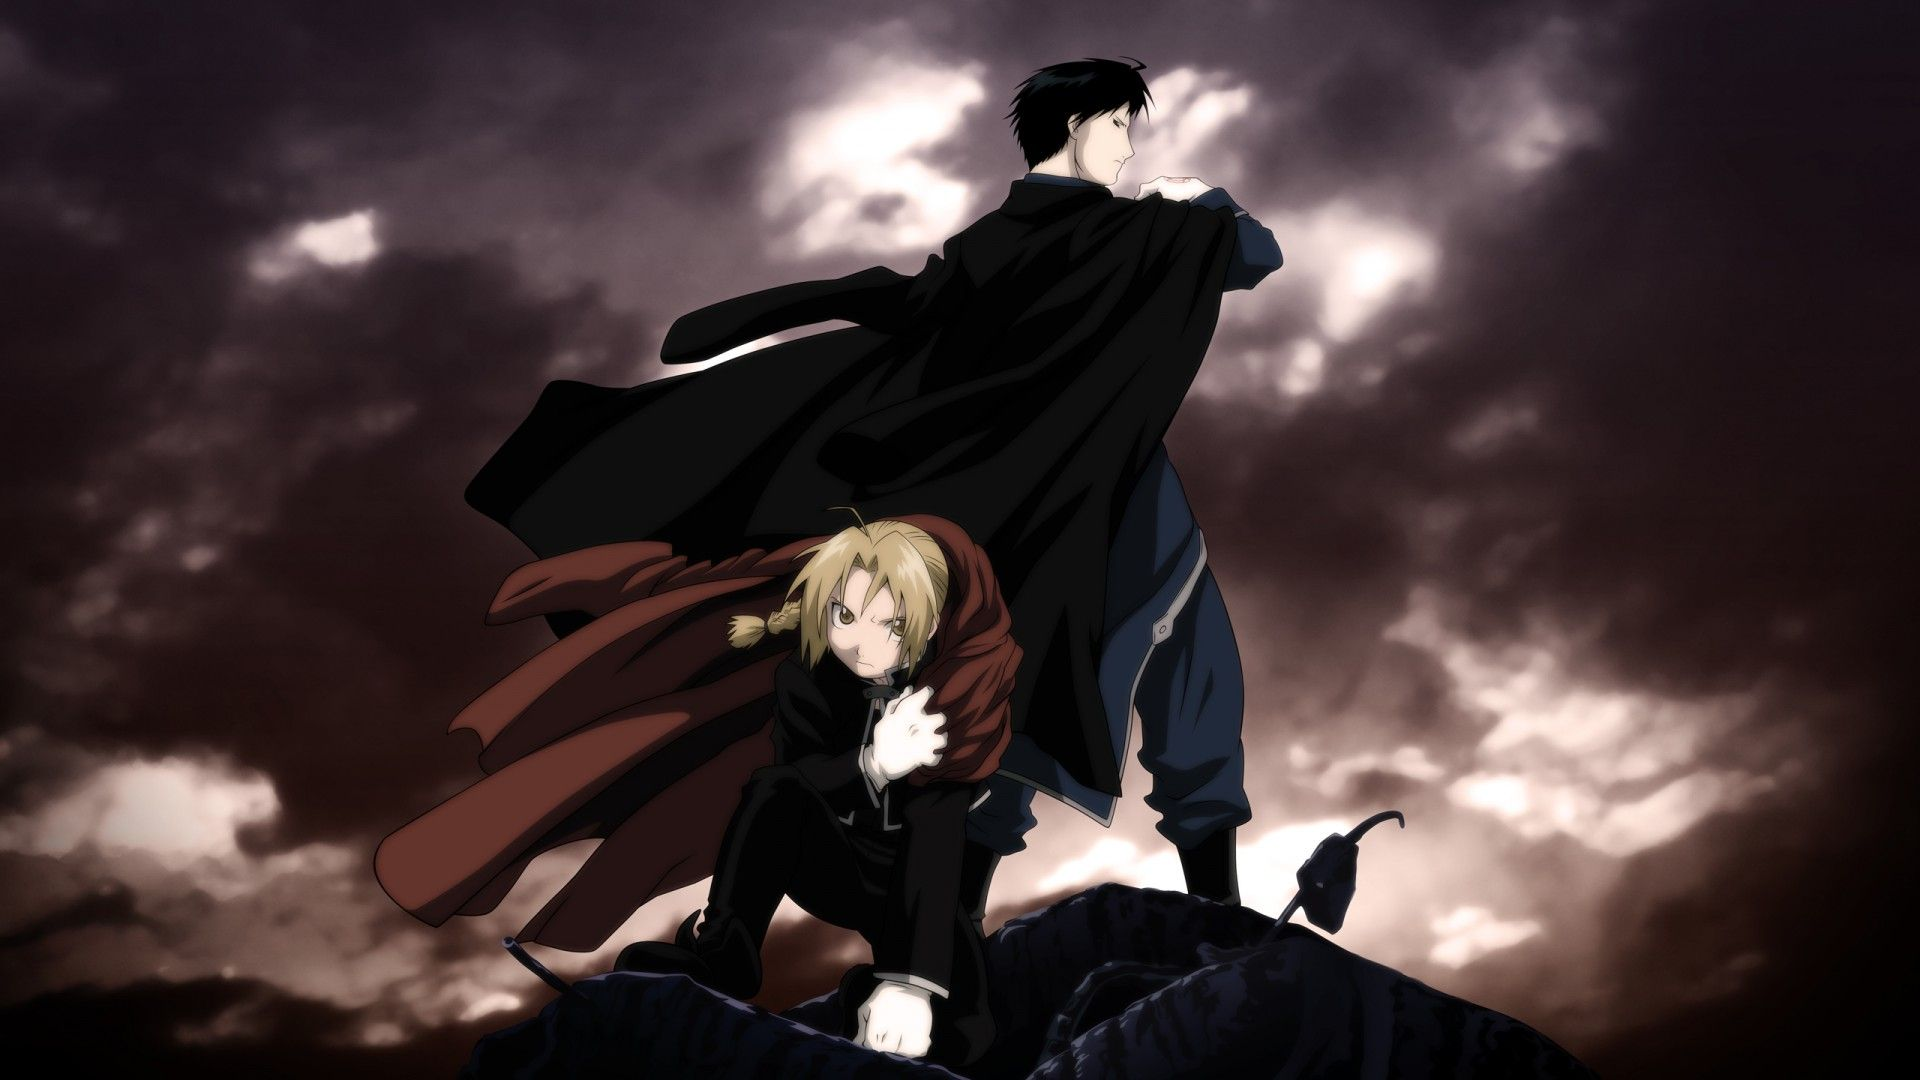 Fullmetal Alchemist Wallpapers HD 1920x1080